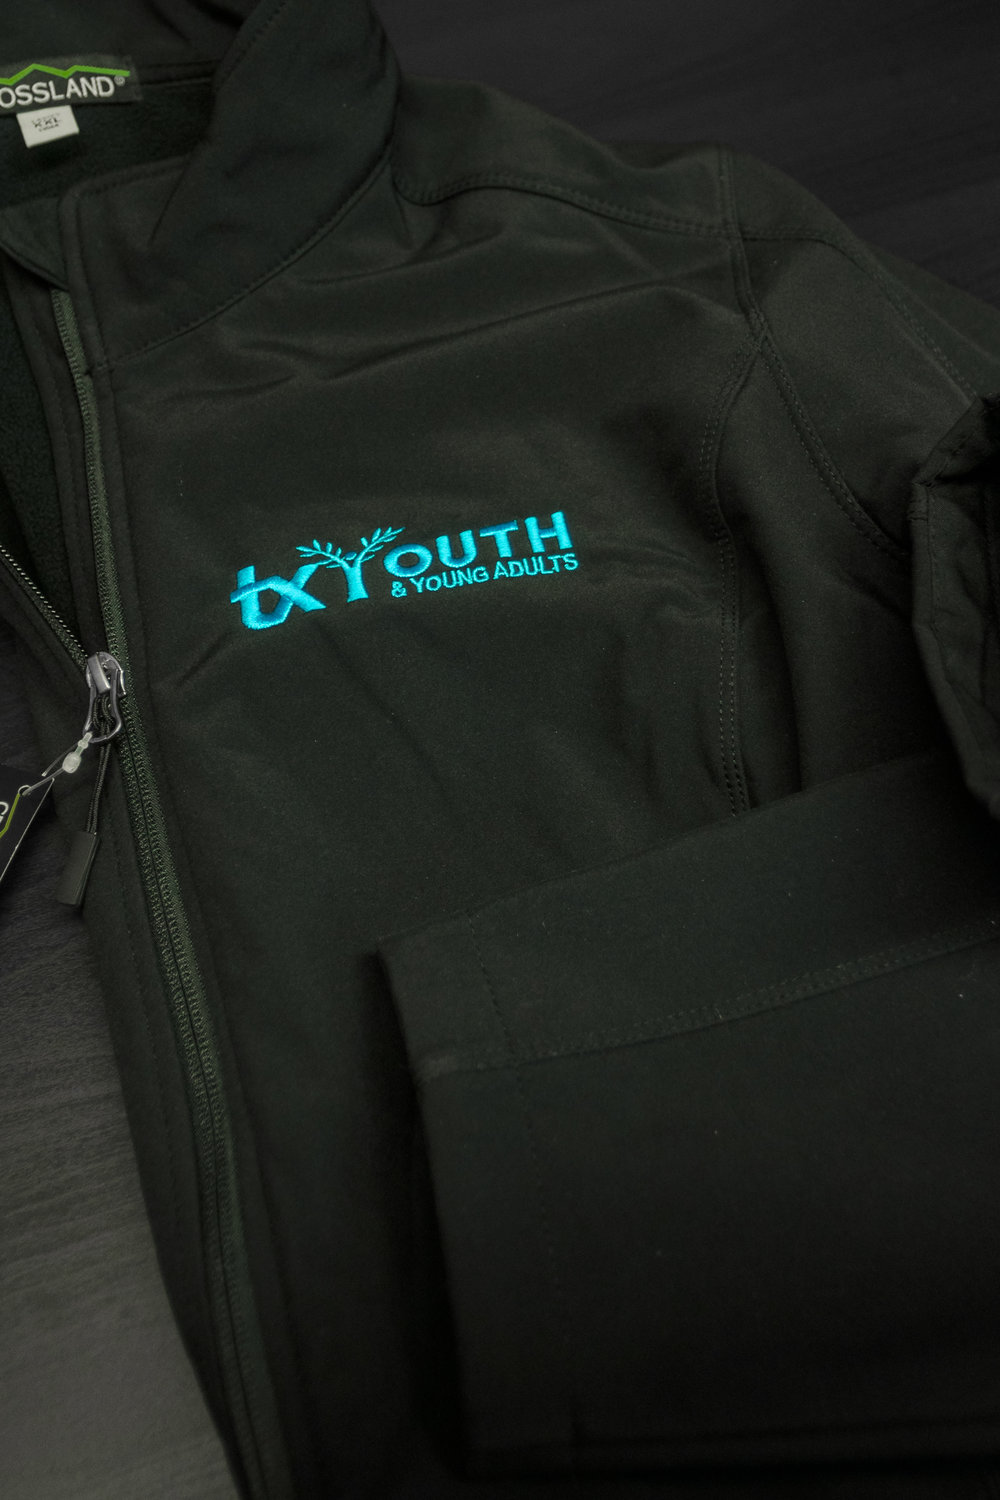 TX YOUTH -  BLUE LOGO JACKET    $45.00